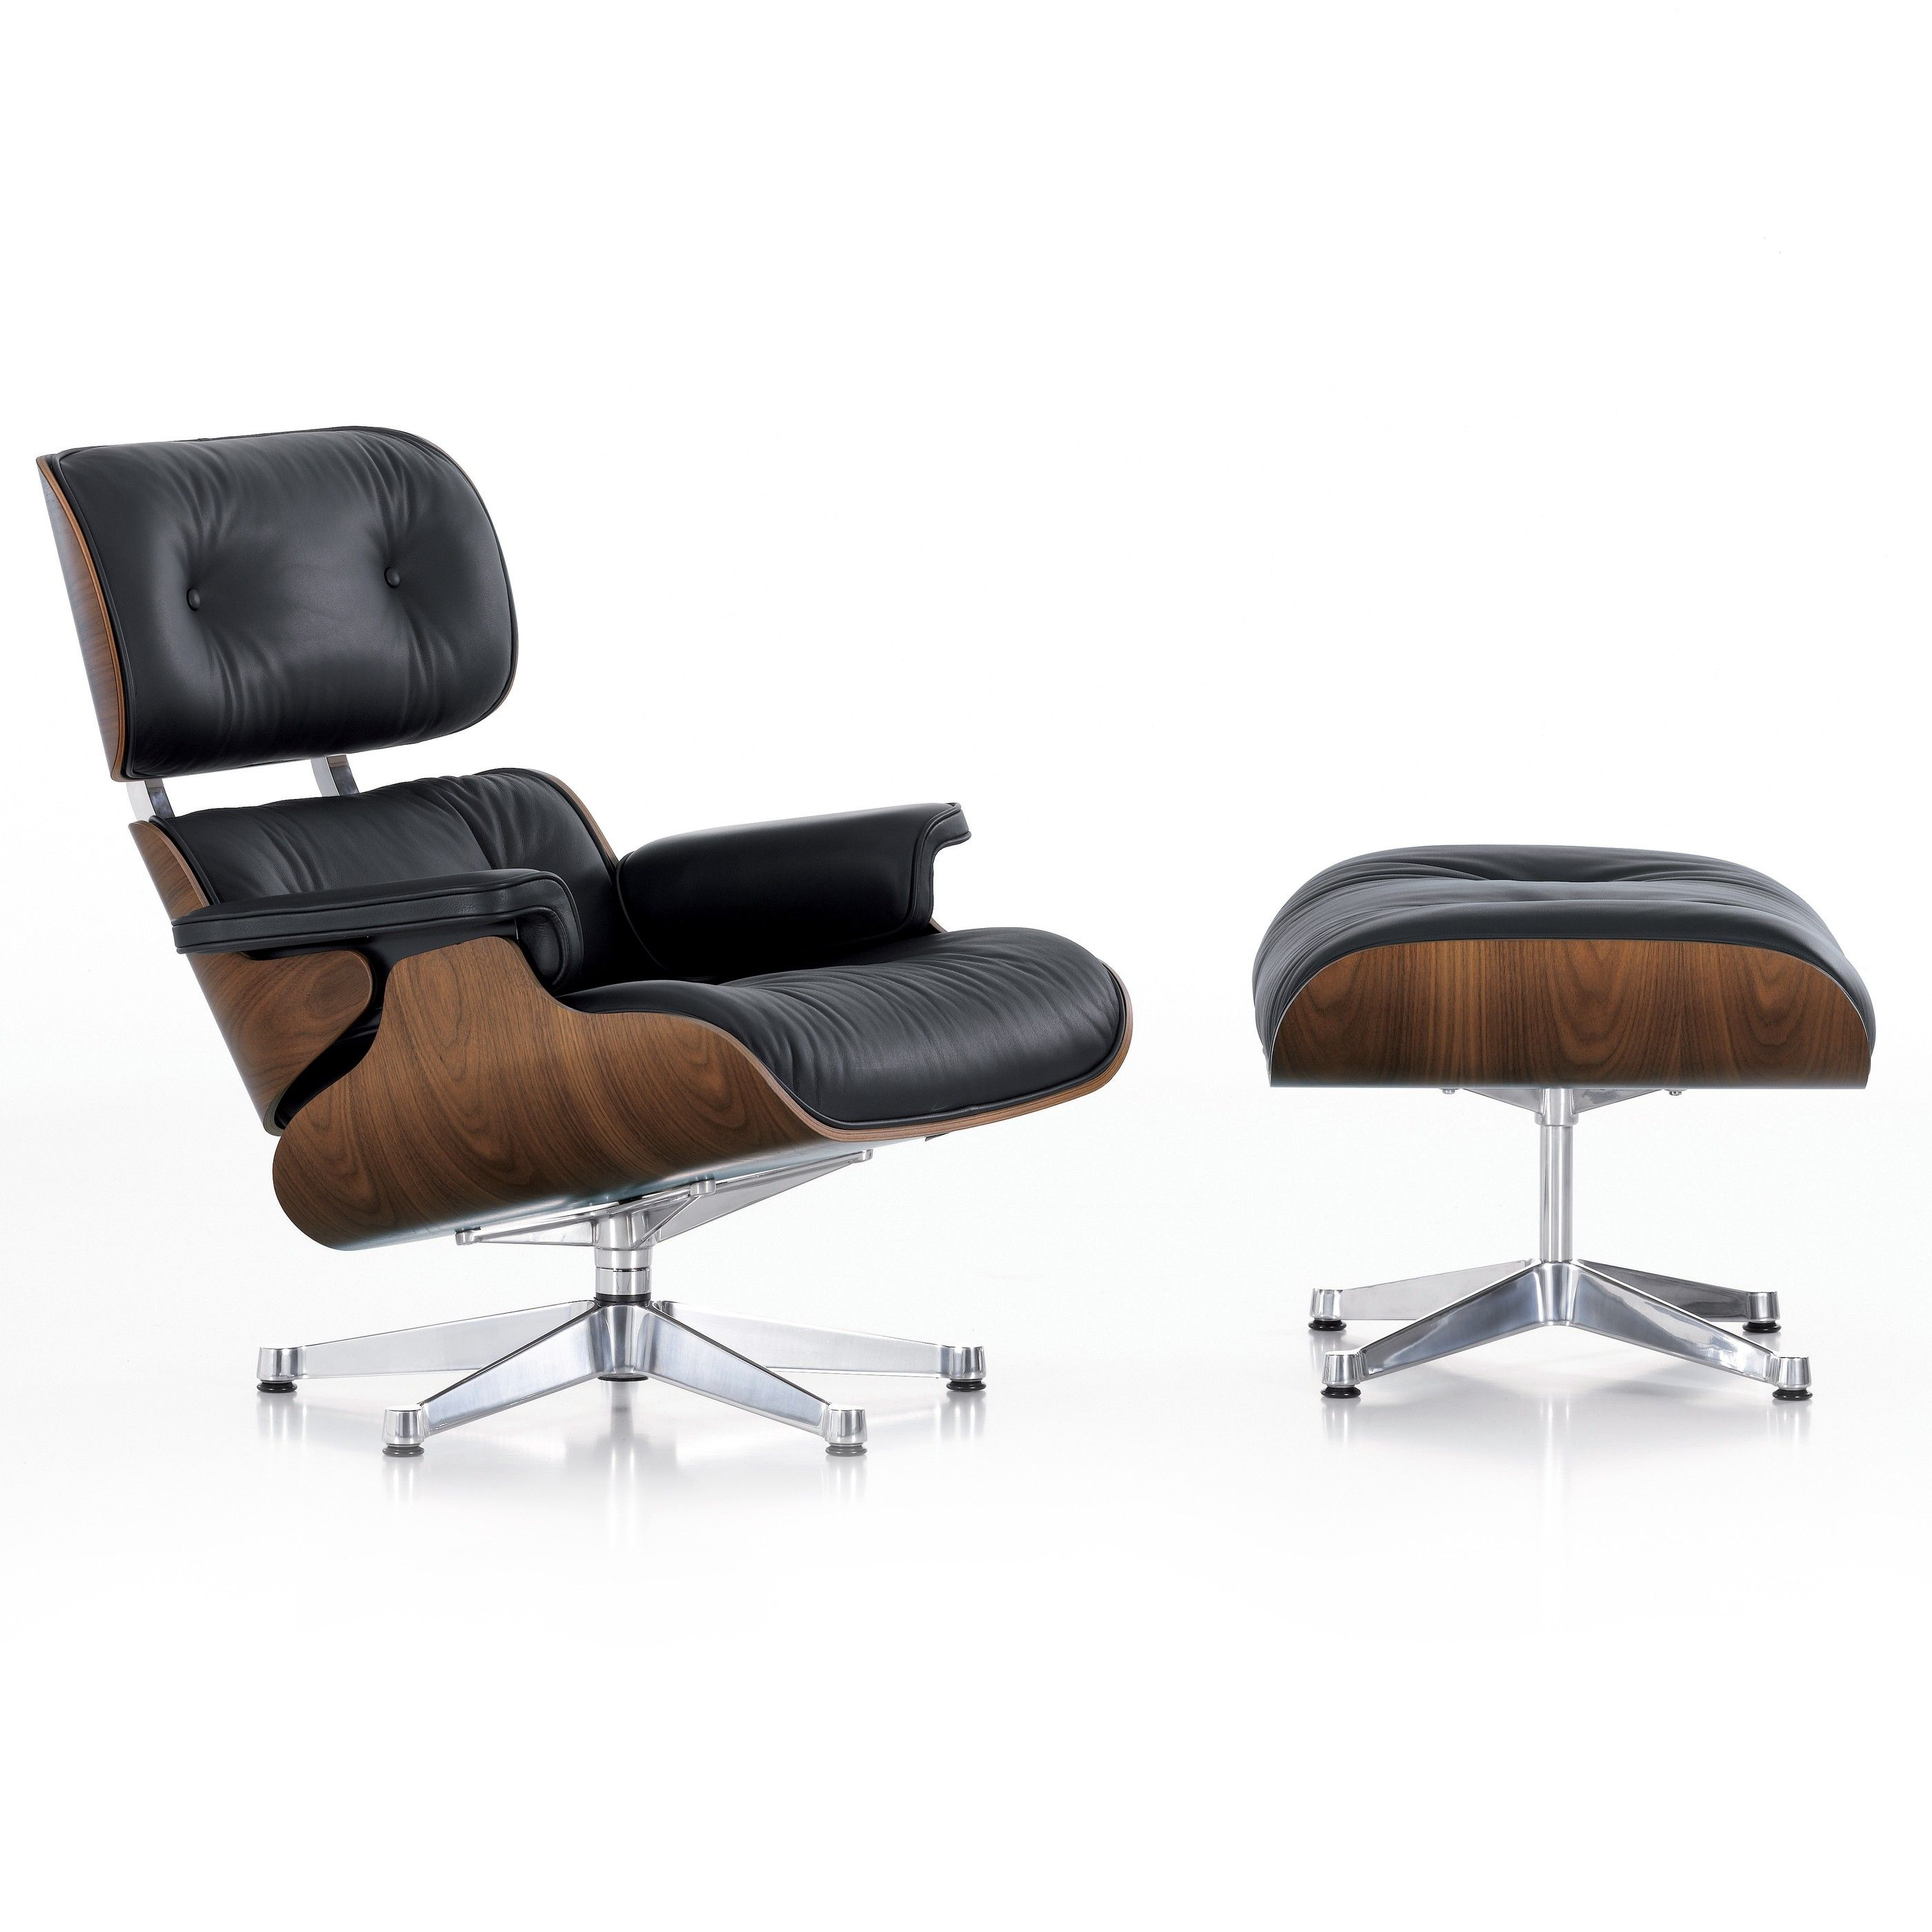 vitra eames lounge chair met ottoman fauteuil nieuwe. Black Bedroom Furniture Sets. Home Design Ideas